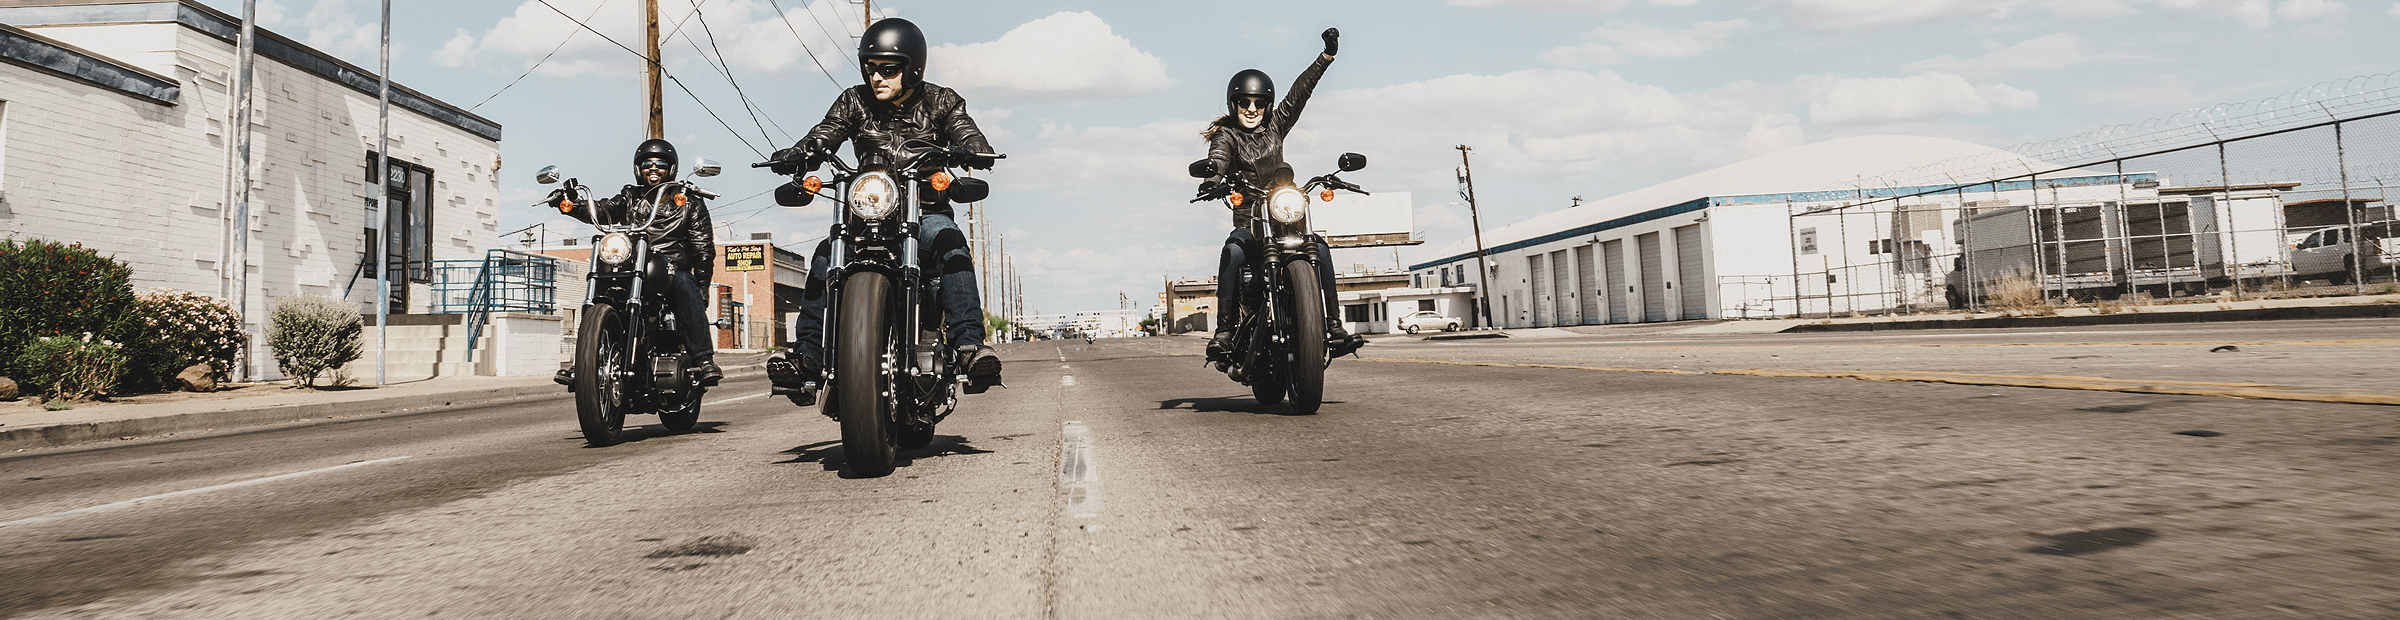 Bikes Under $10k at Harley-Davidson® of Panama City Beach